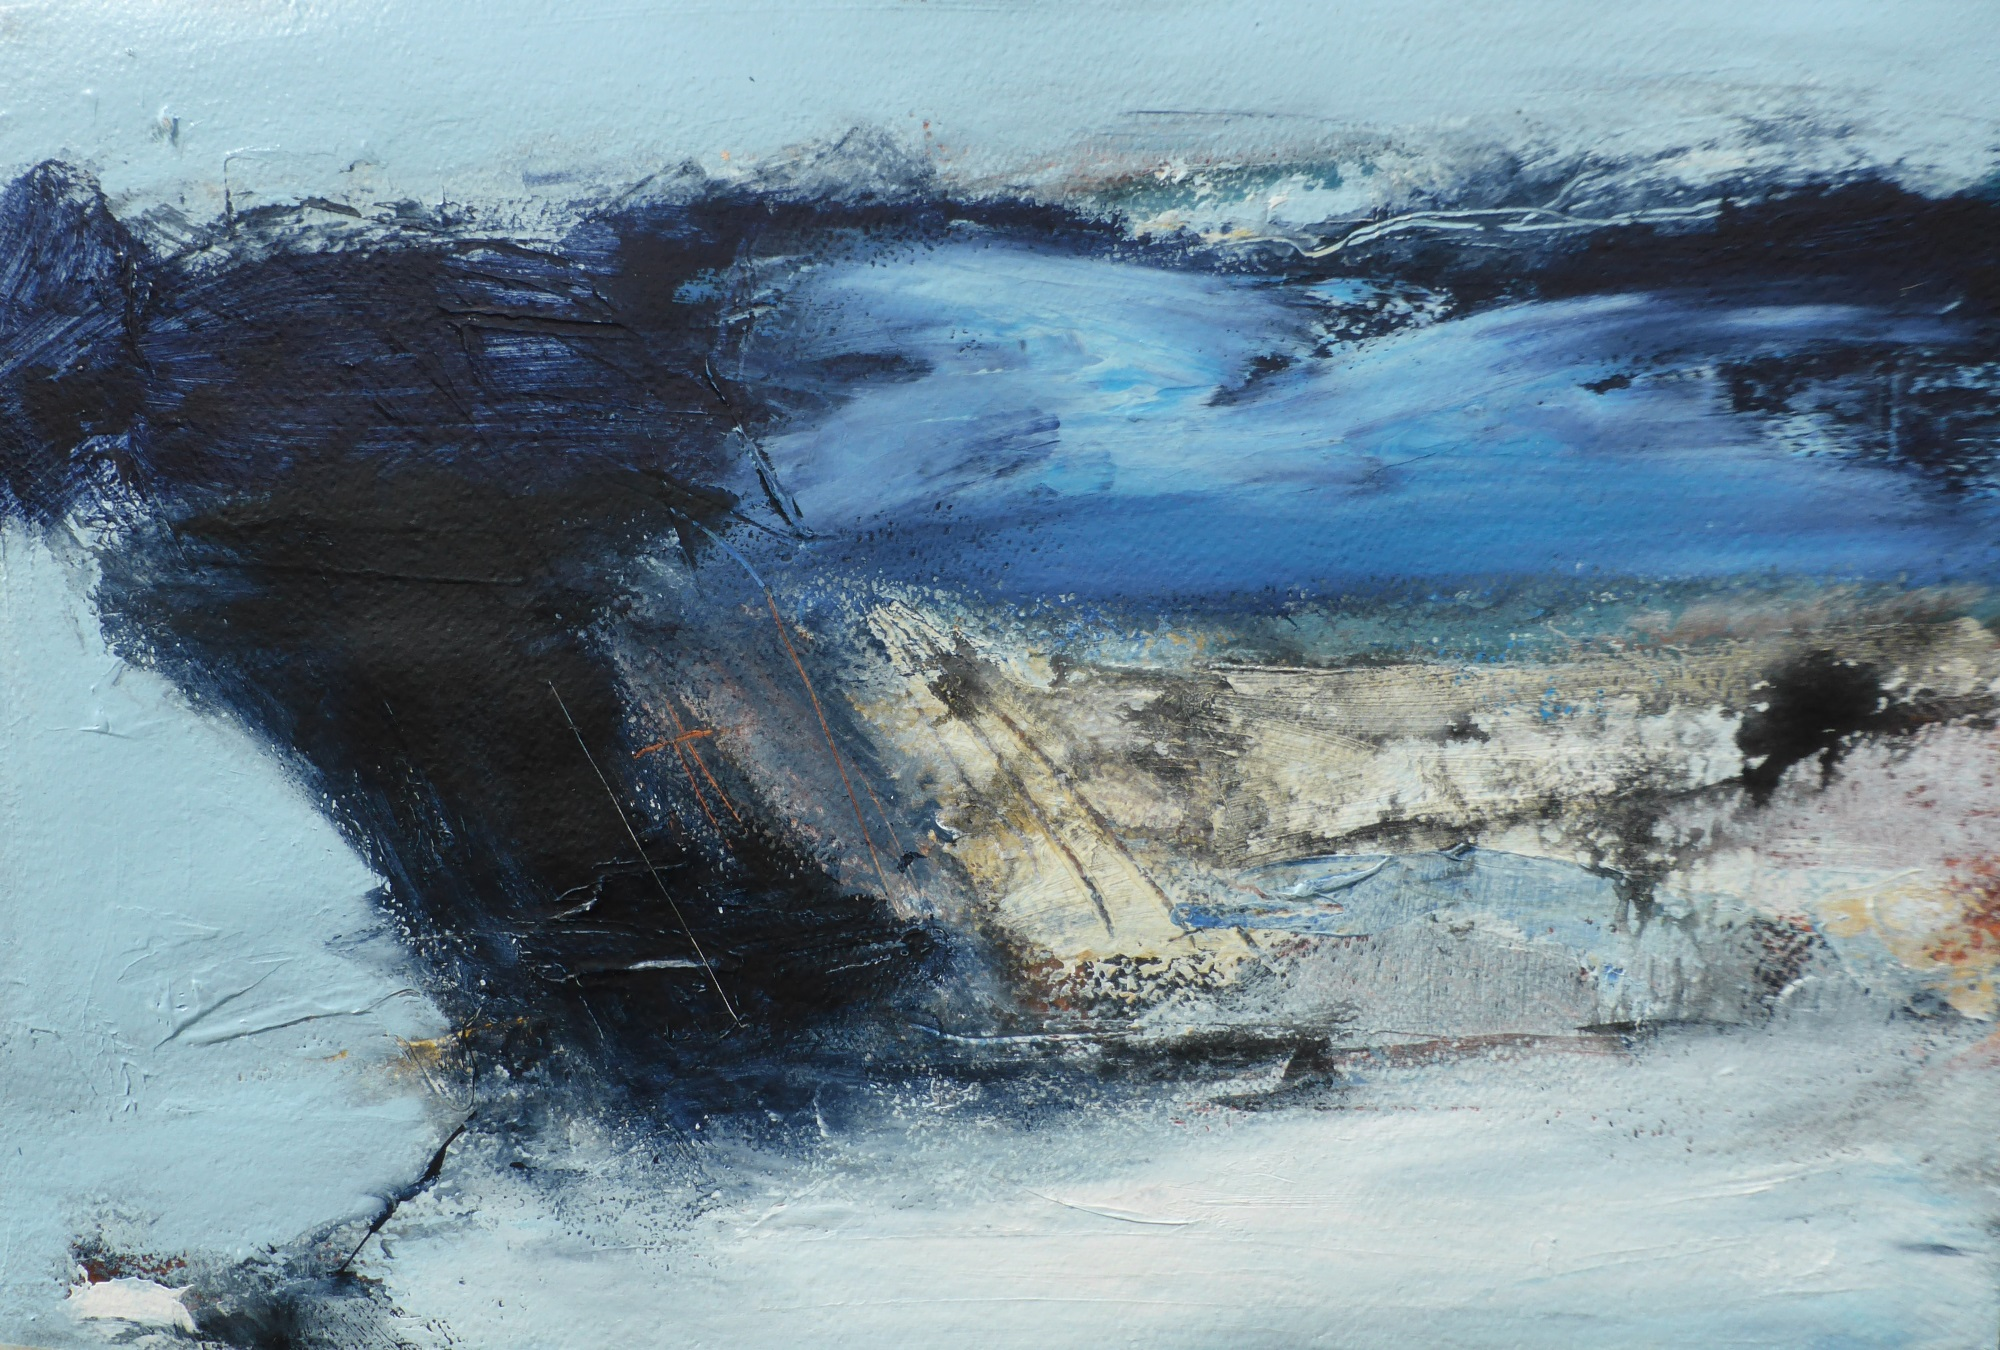 Porthledden - Cape Cornwall, mixed media on paper, 50 x 65cm